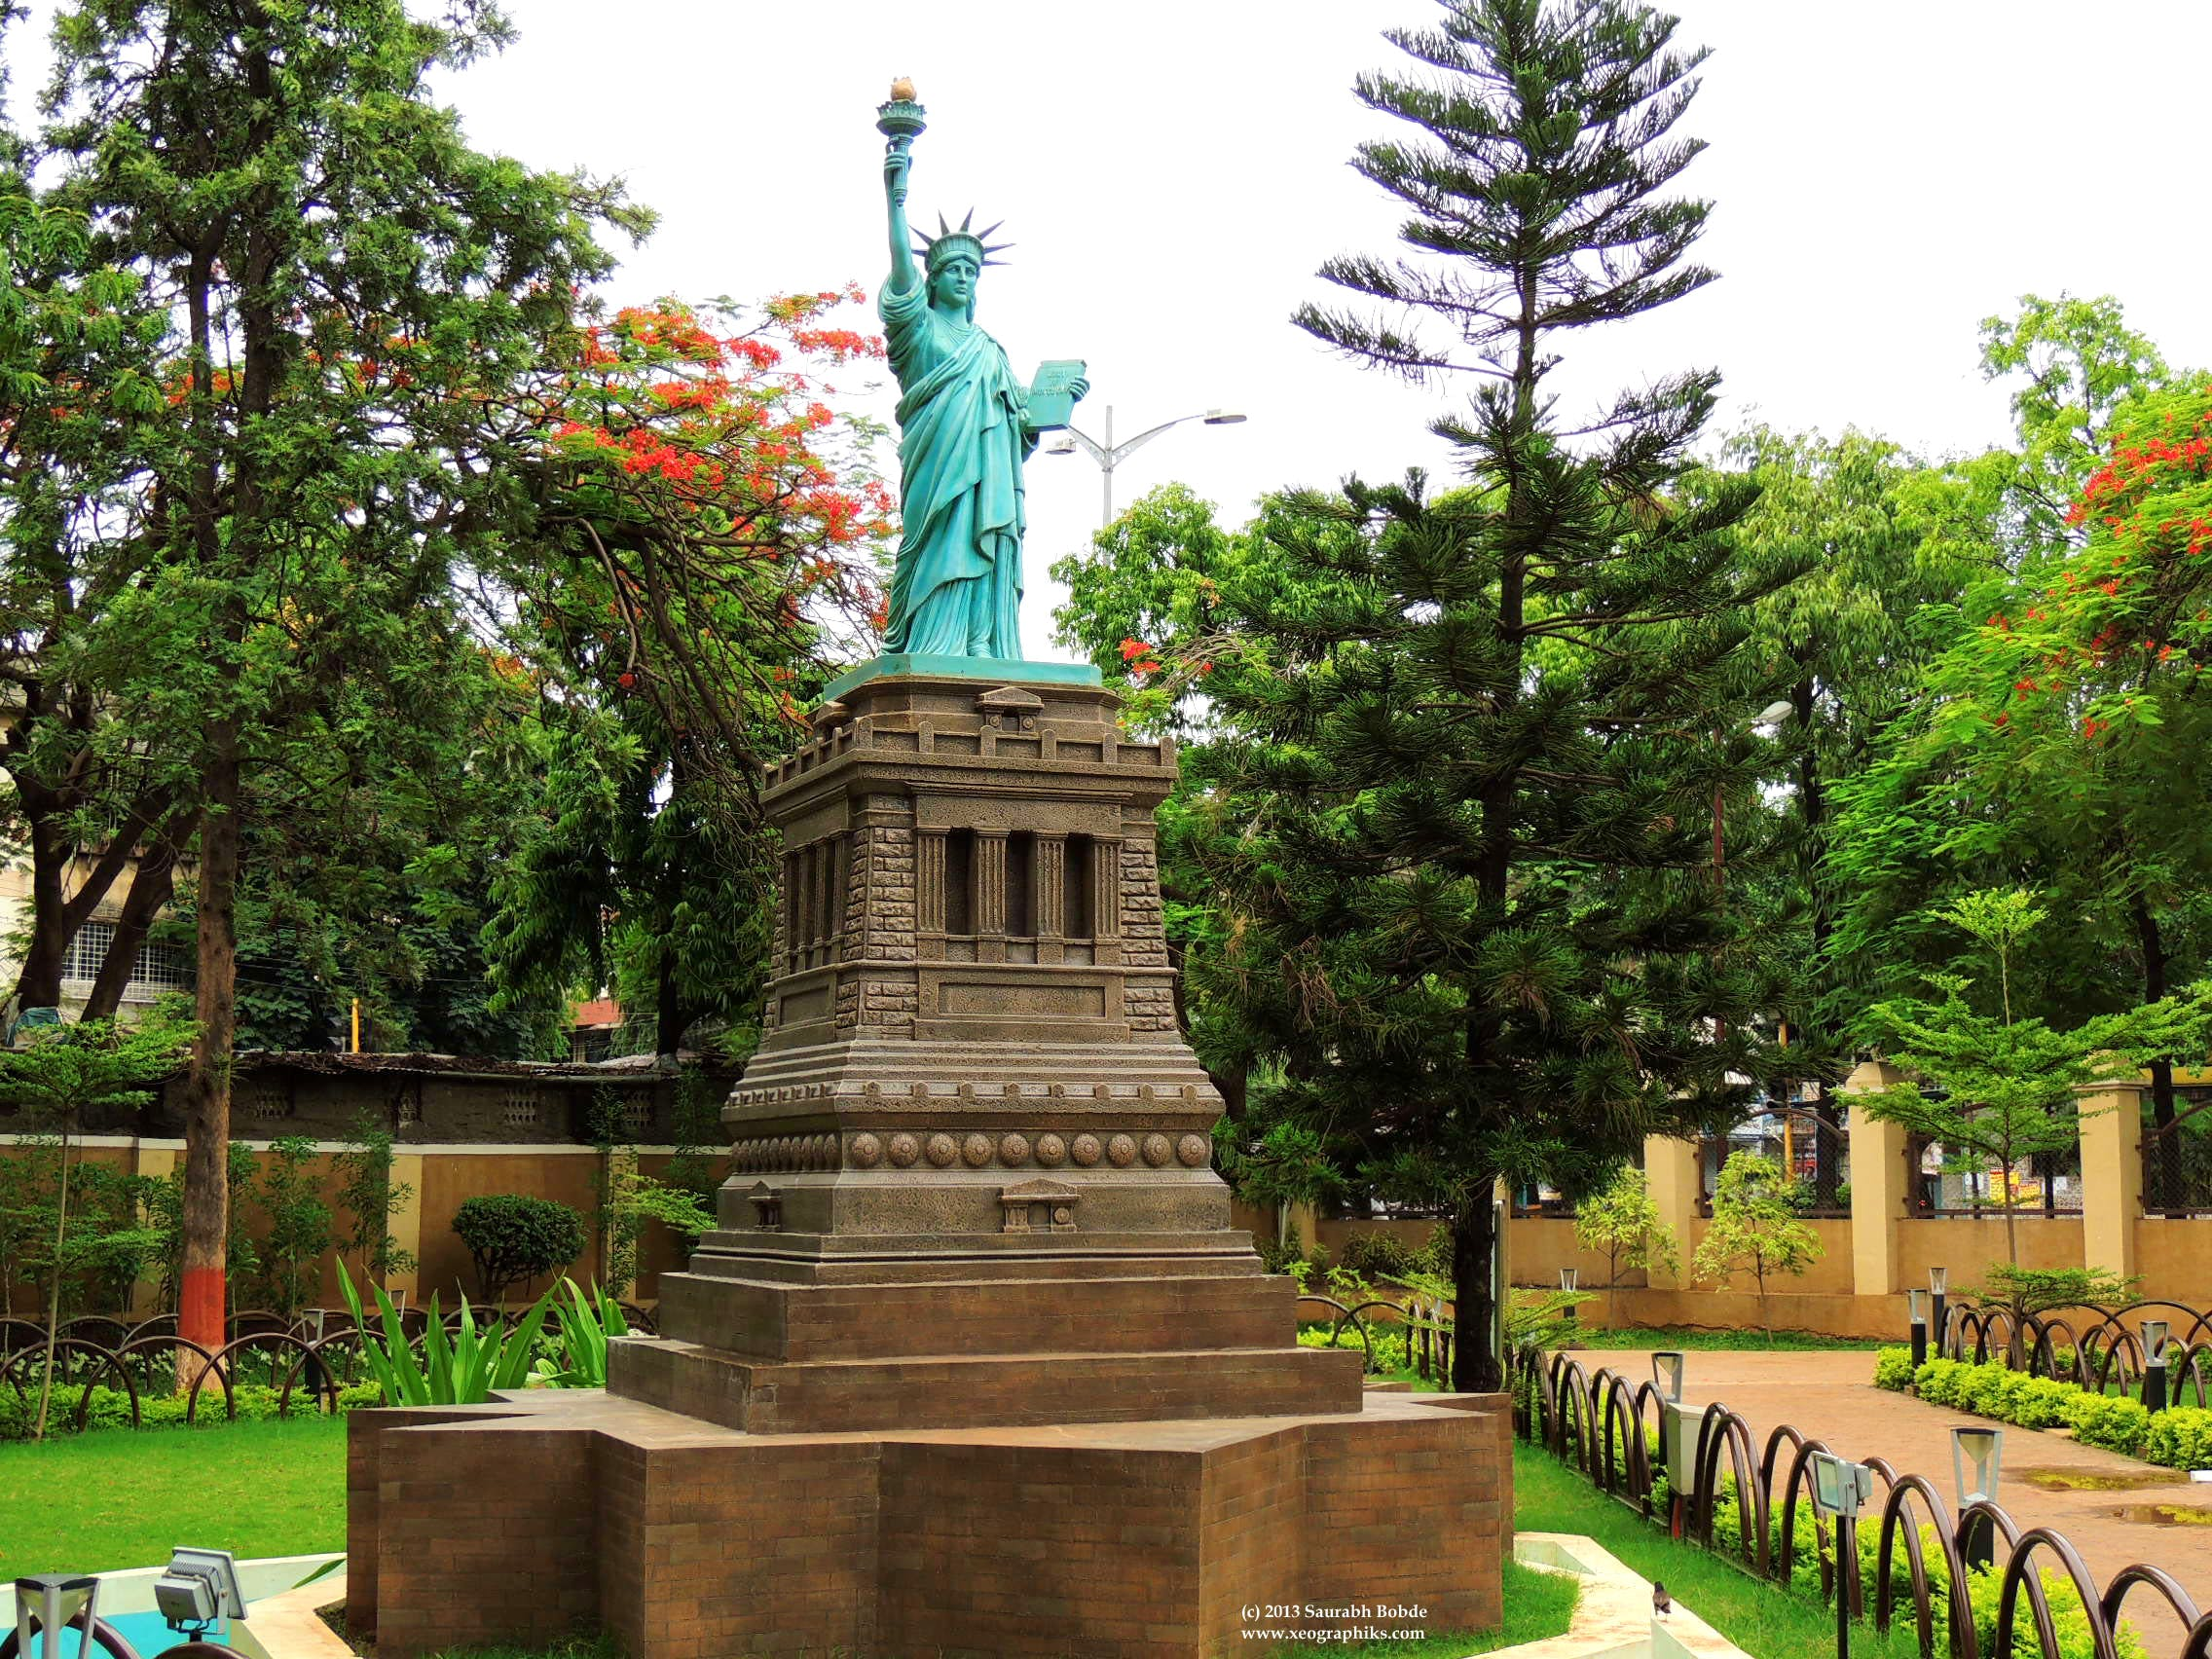 Visit Yashwantrao Chavan Garden To Witness Wonderful Sculptures Of All The Seven Wonders Of The World